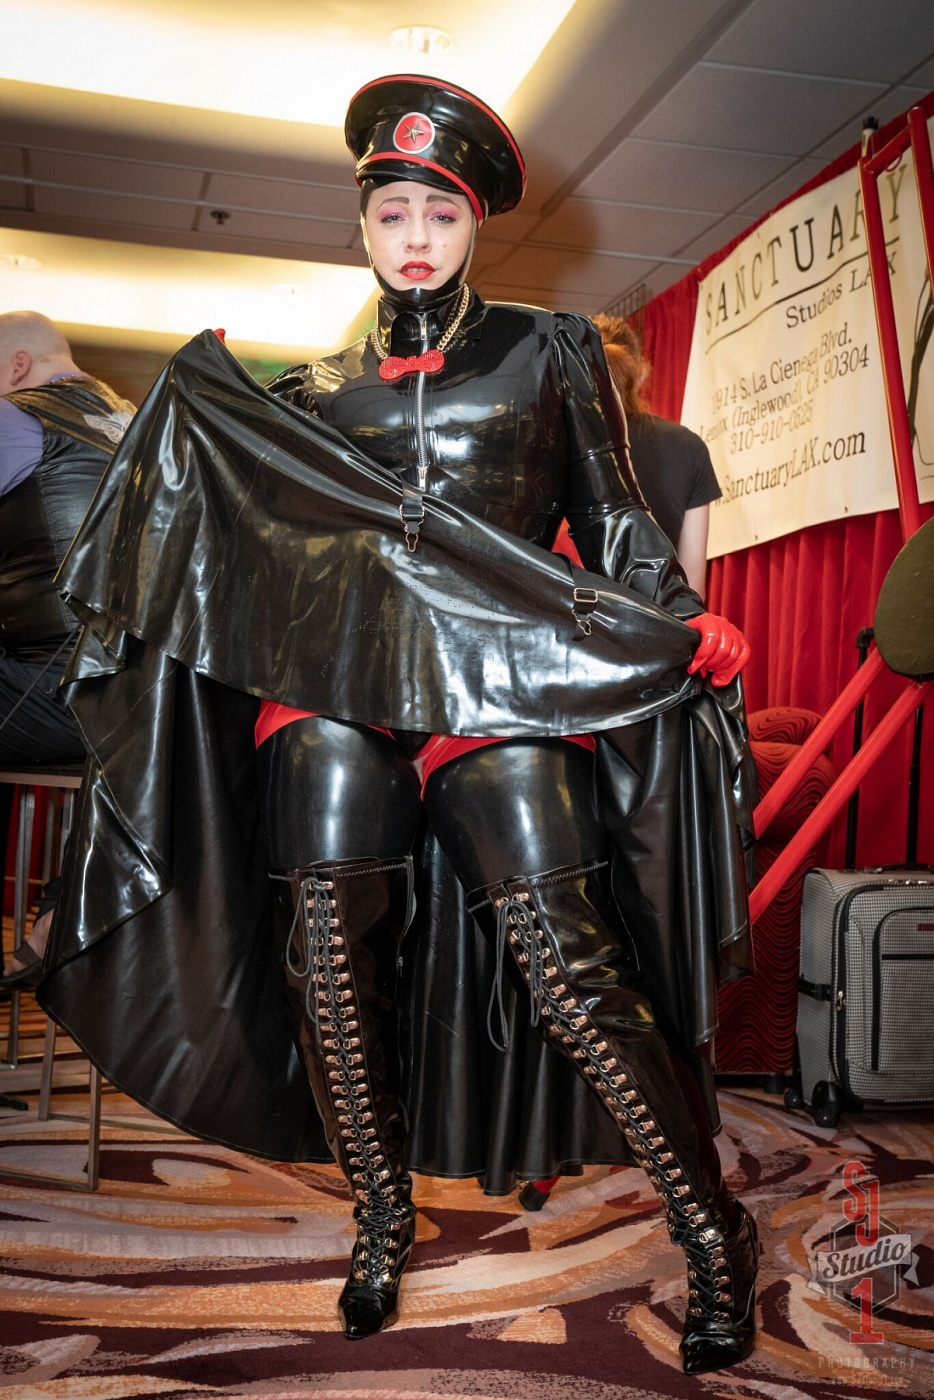 Rubber Goddess Serenity Smith